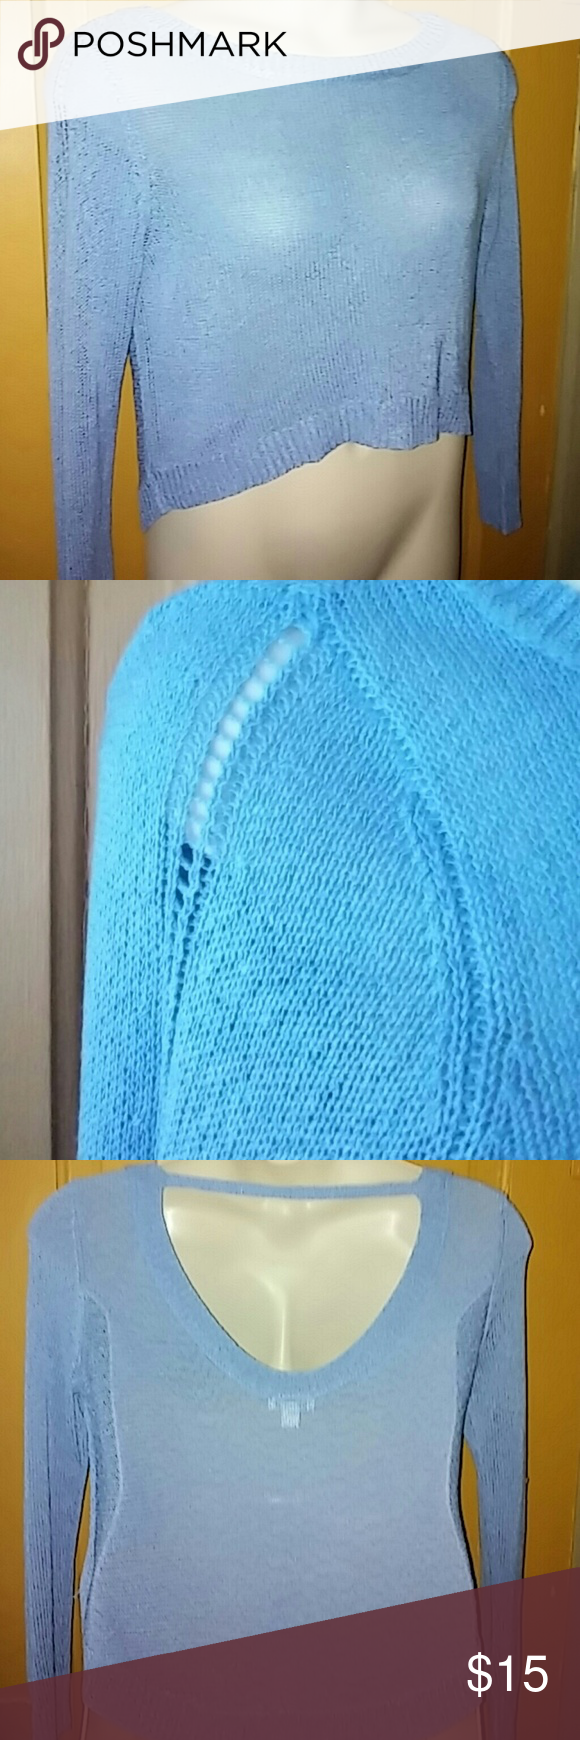 Sexy light blue sweater size M Excellent condition.... 80% acrylic 20%nylon Bisou Bisou Sweaters Crew & Scoop Necks